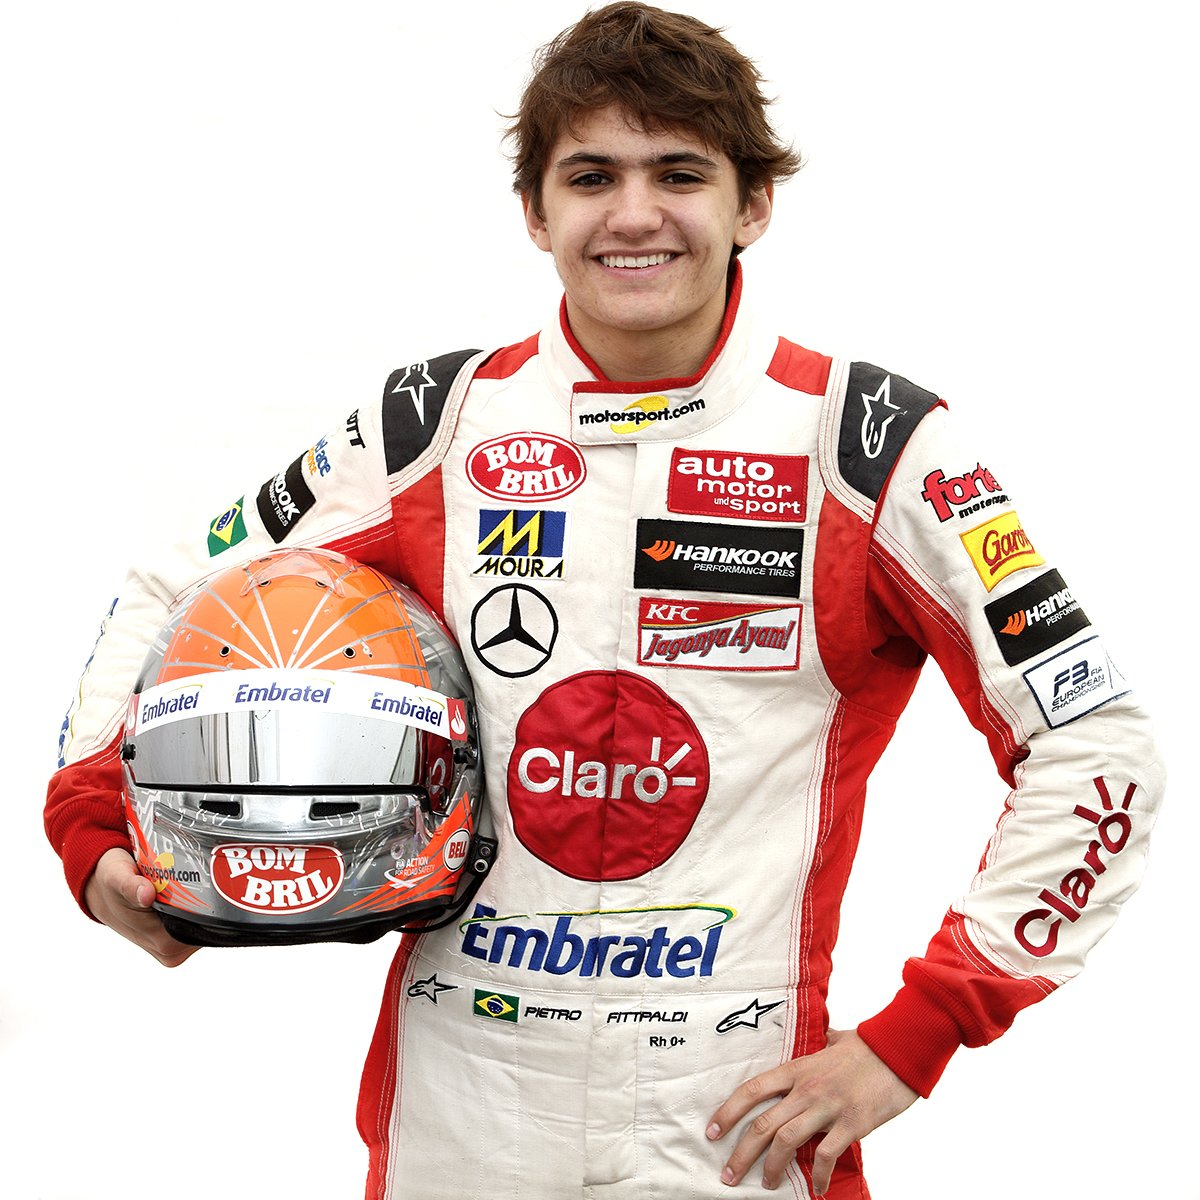 Proud to announce I'll be racing with @FortecM in the 2016 @RPM_Racing1 season! https://t.co/70k3H5m11G #FormulaV8 https://t.co/hW4dogT7lr